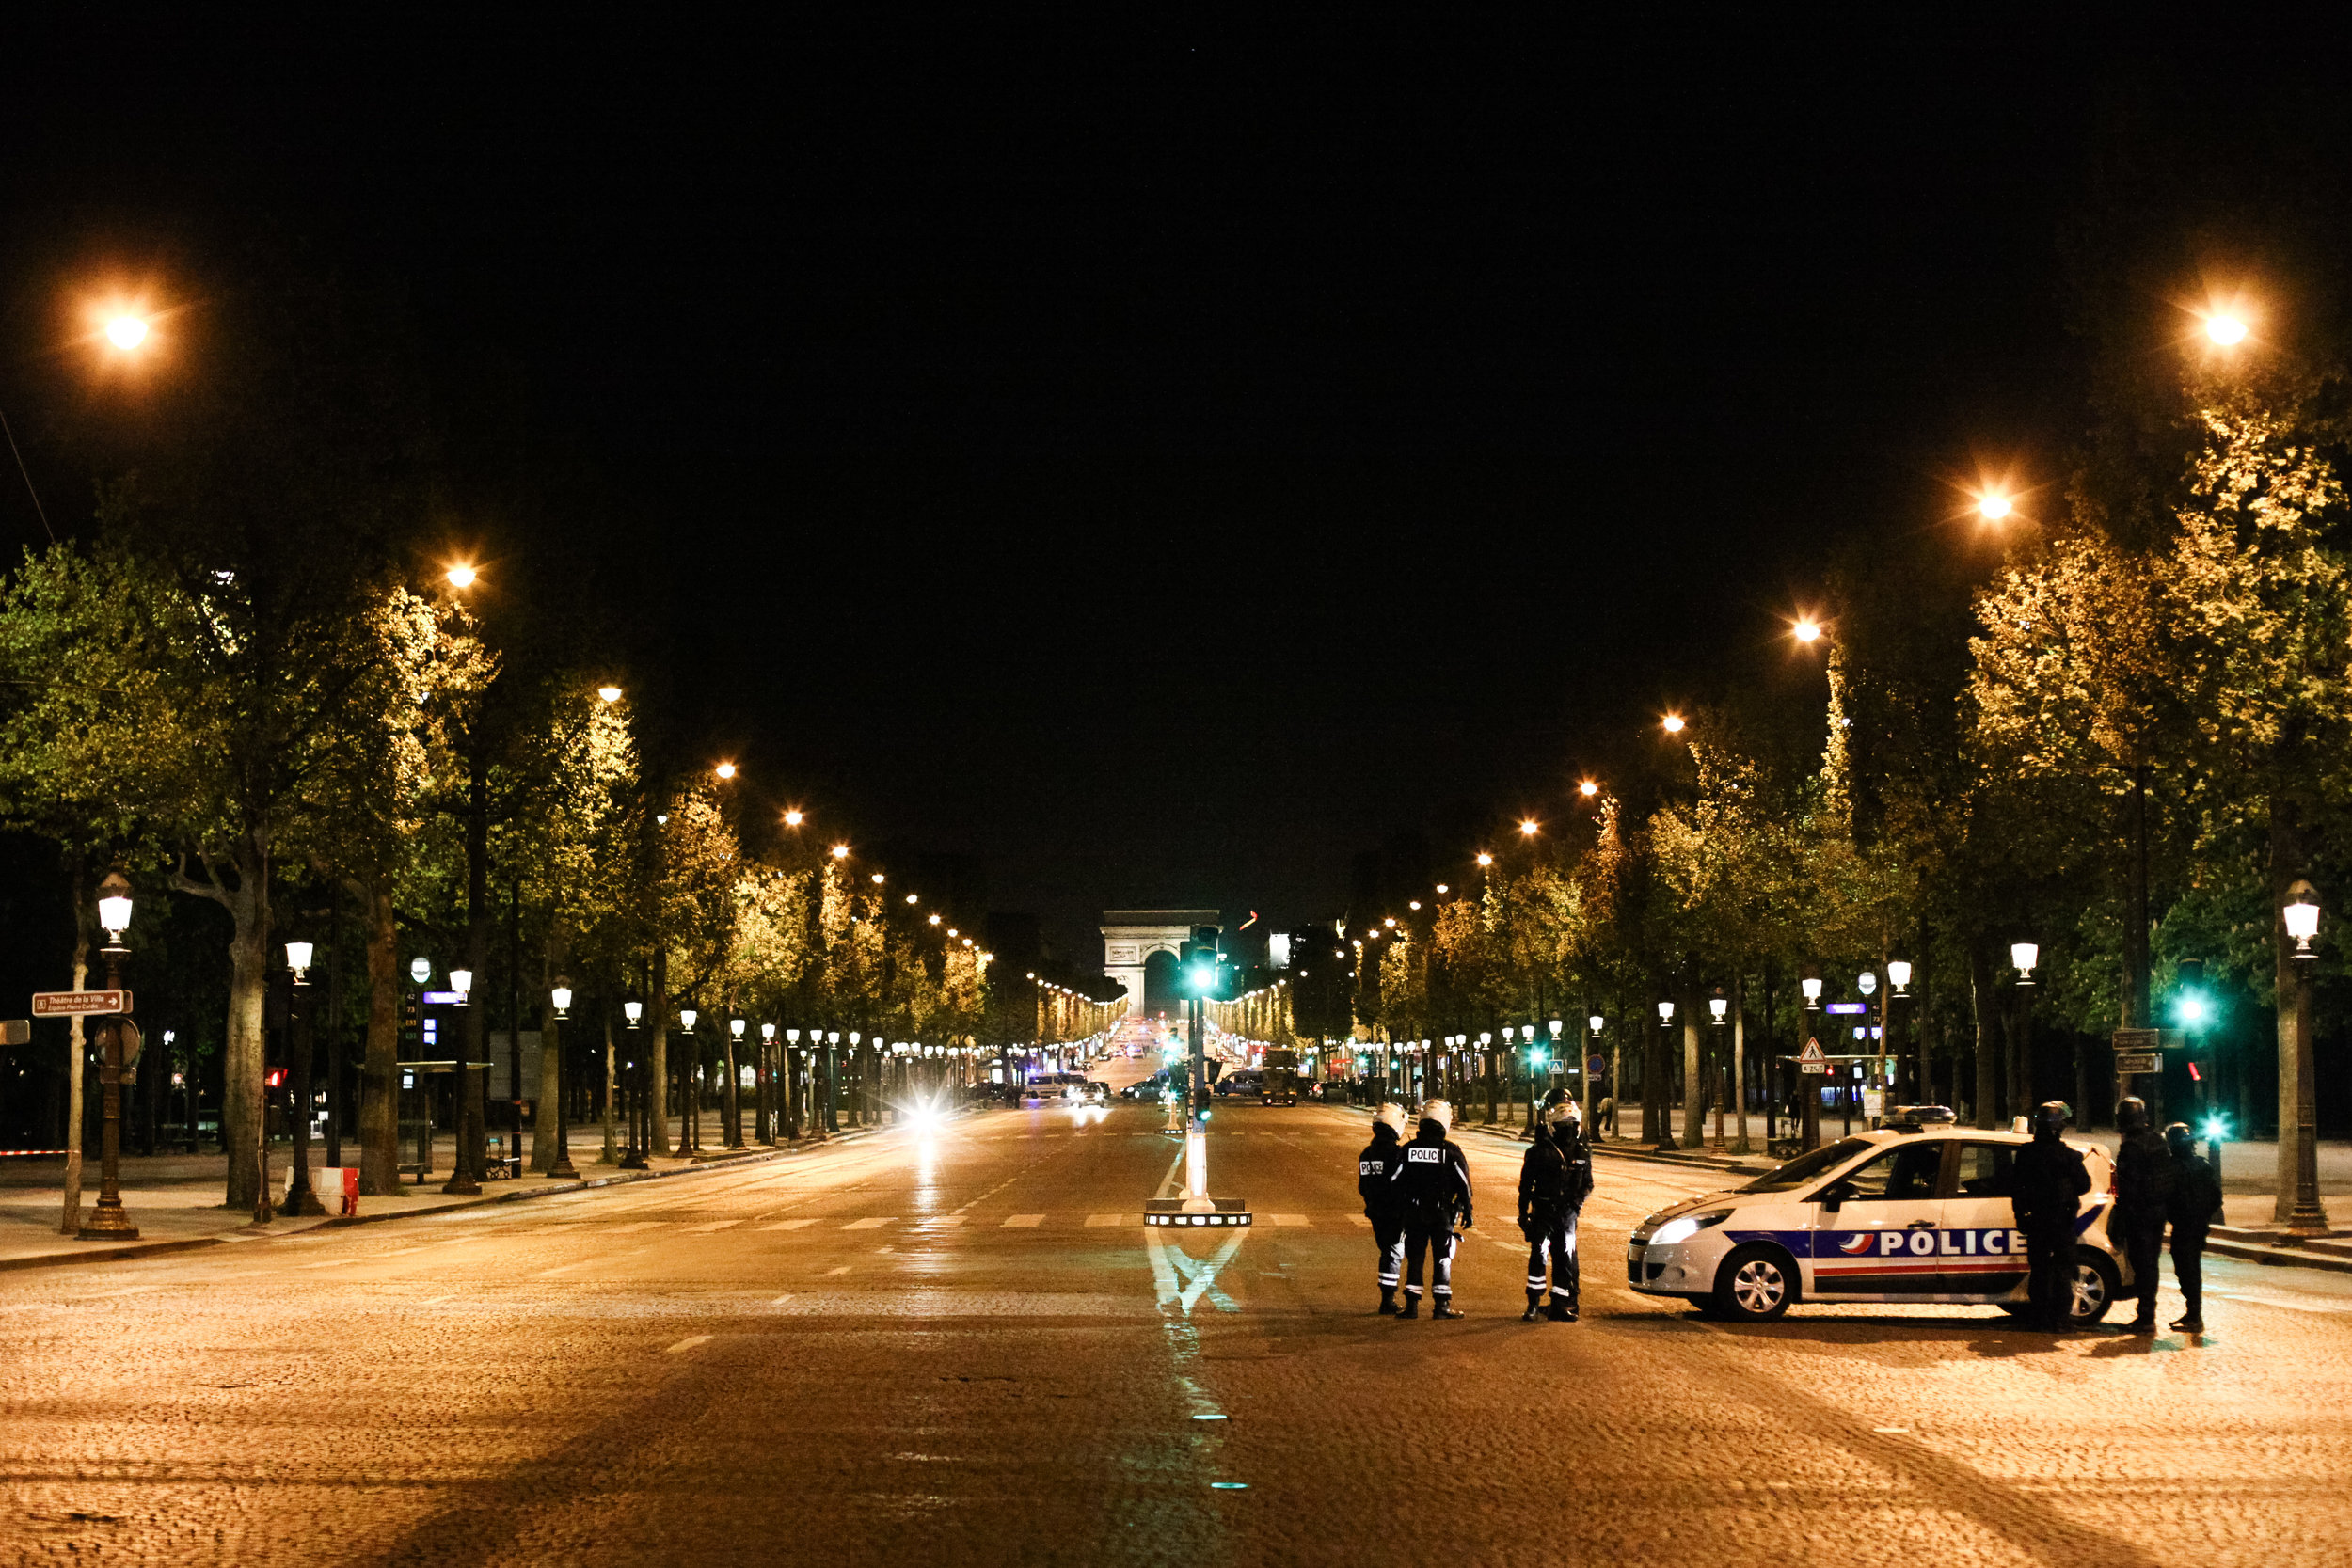 65-20170420-ATTAQUE-CHAMPS-ELYSEES-PARIS©Augustin-Le_Gall-Haytham-Pictures-IMG_1390.jpg